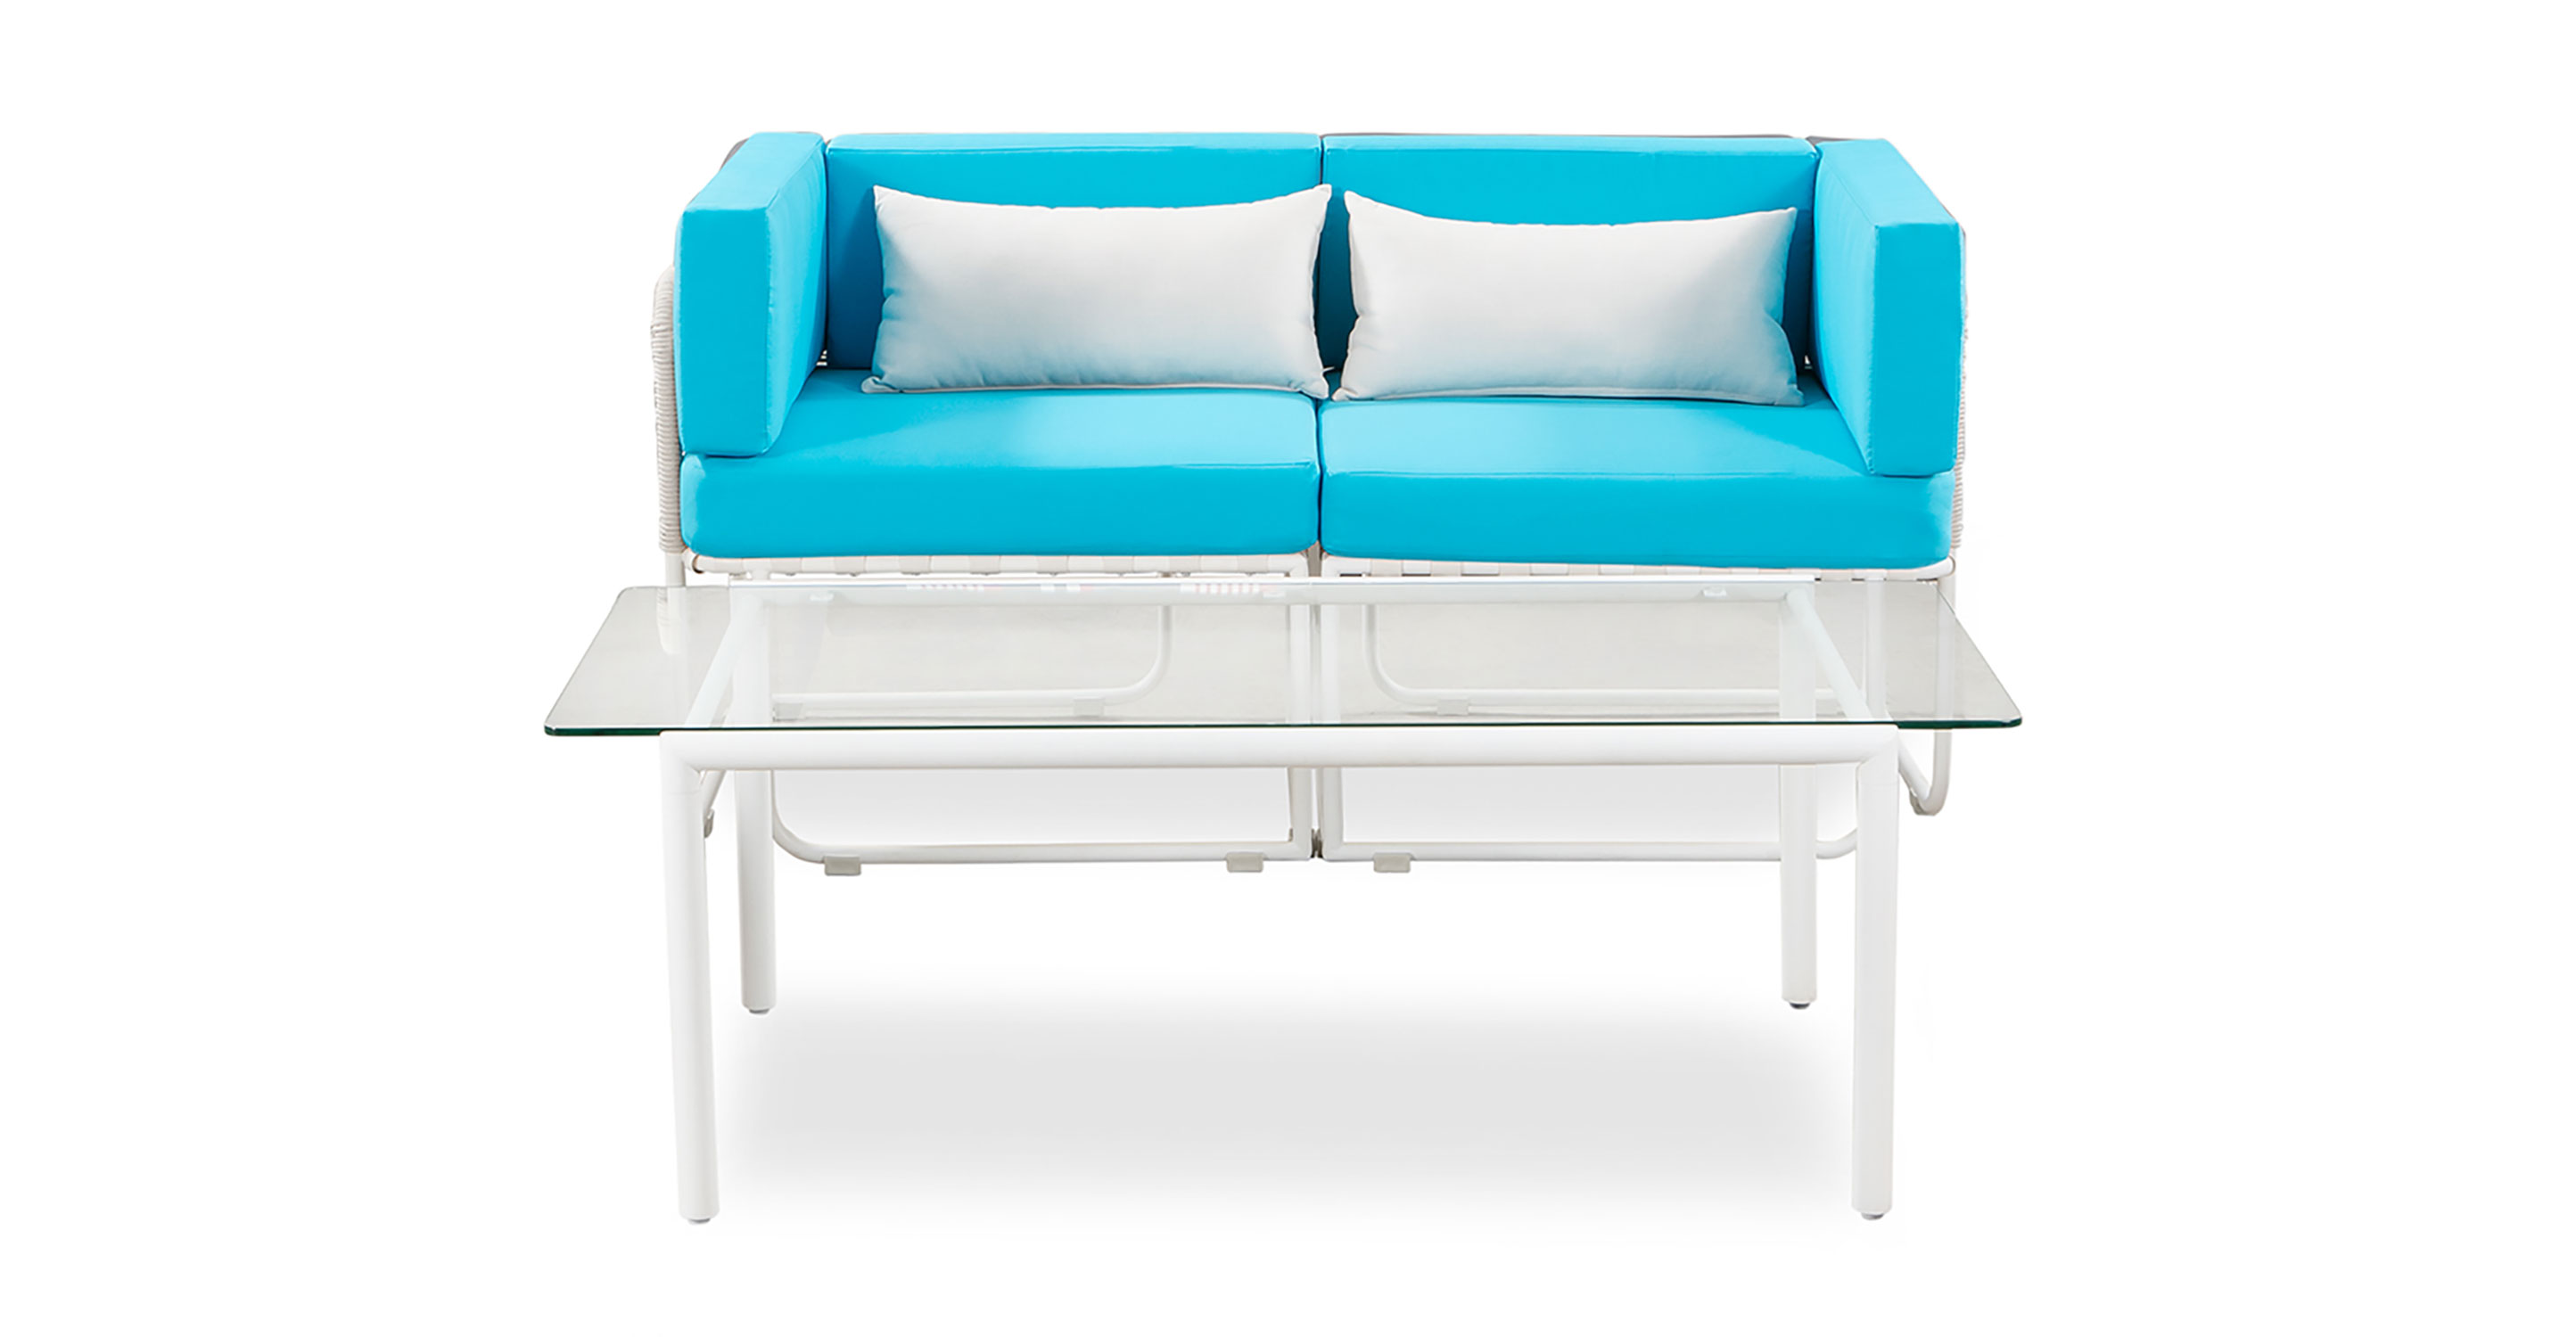 Curbed Outdoor Vive 3-pc set, White/Turquoise